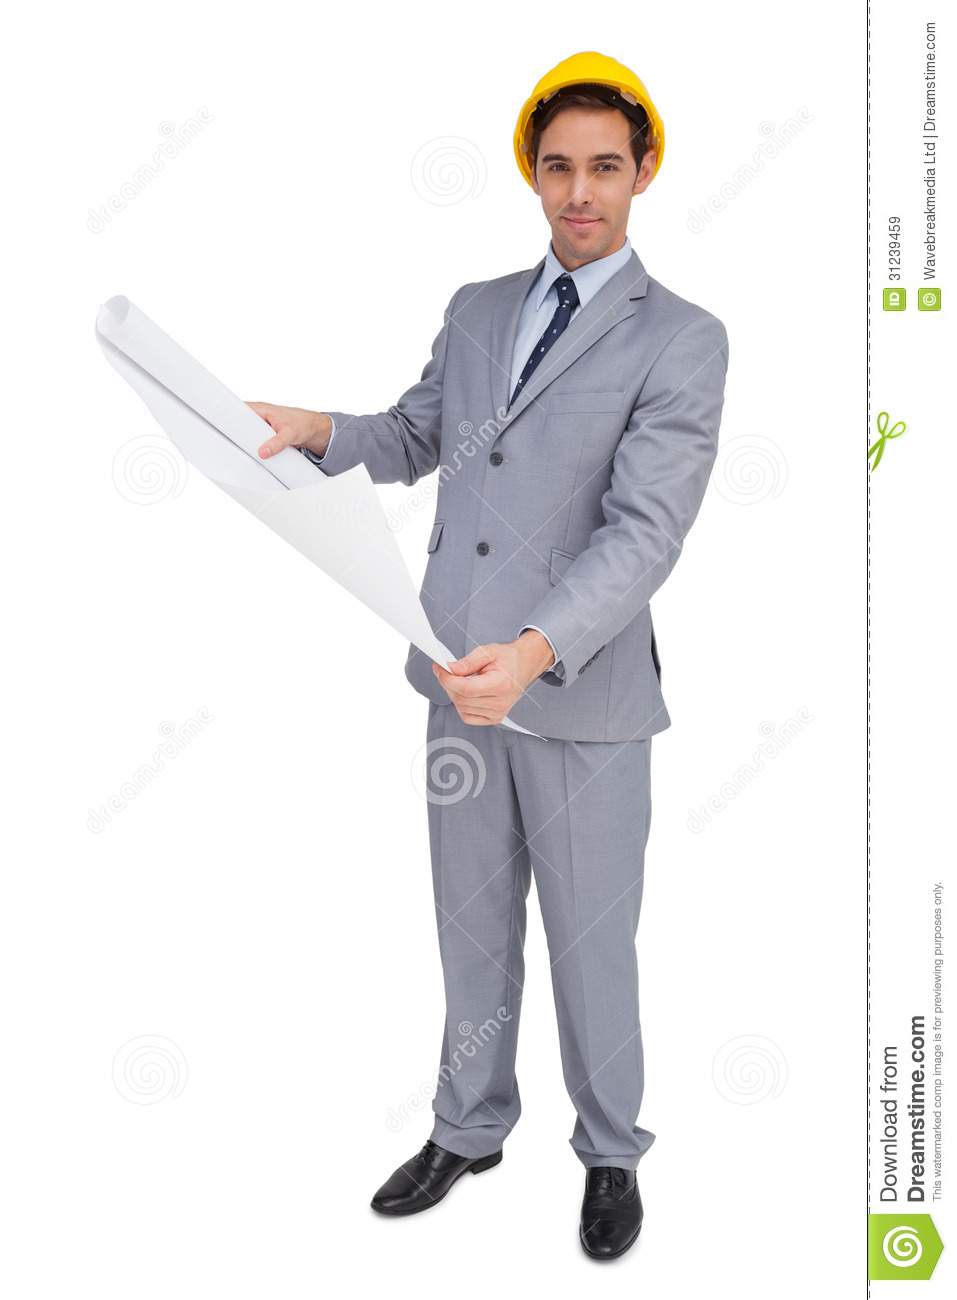 Serious Architect With Hard Hat Holding Plans Royalty Free